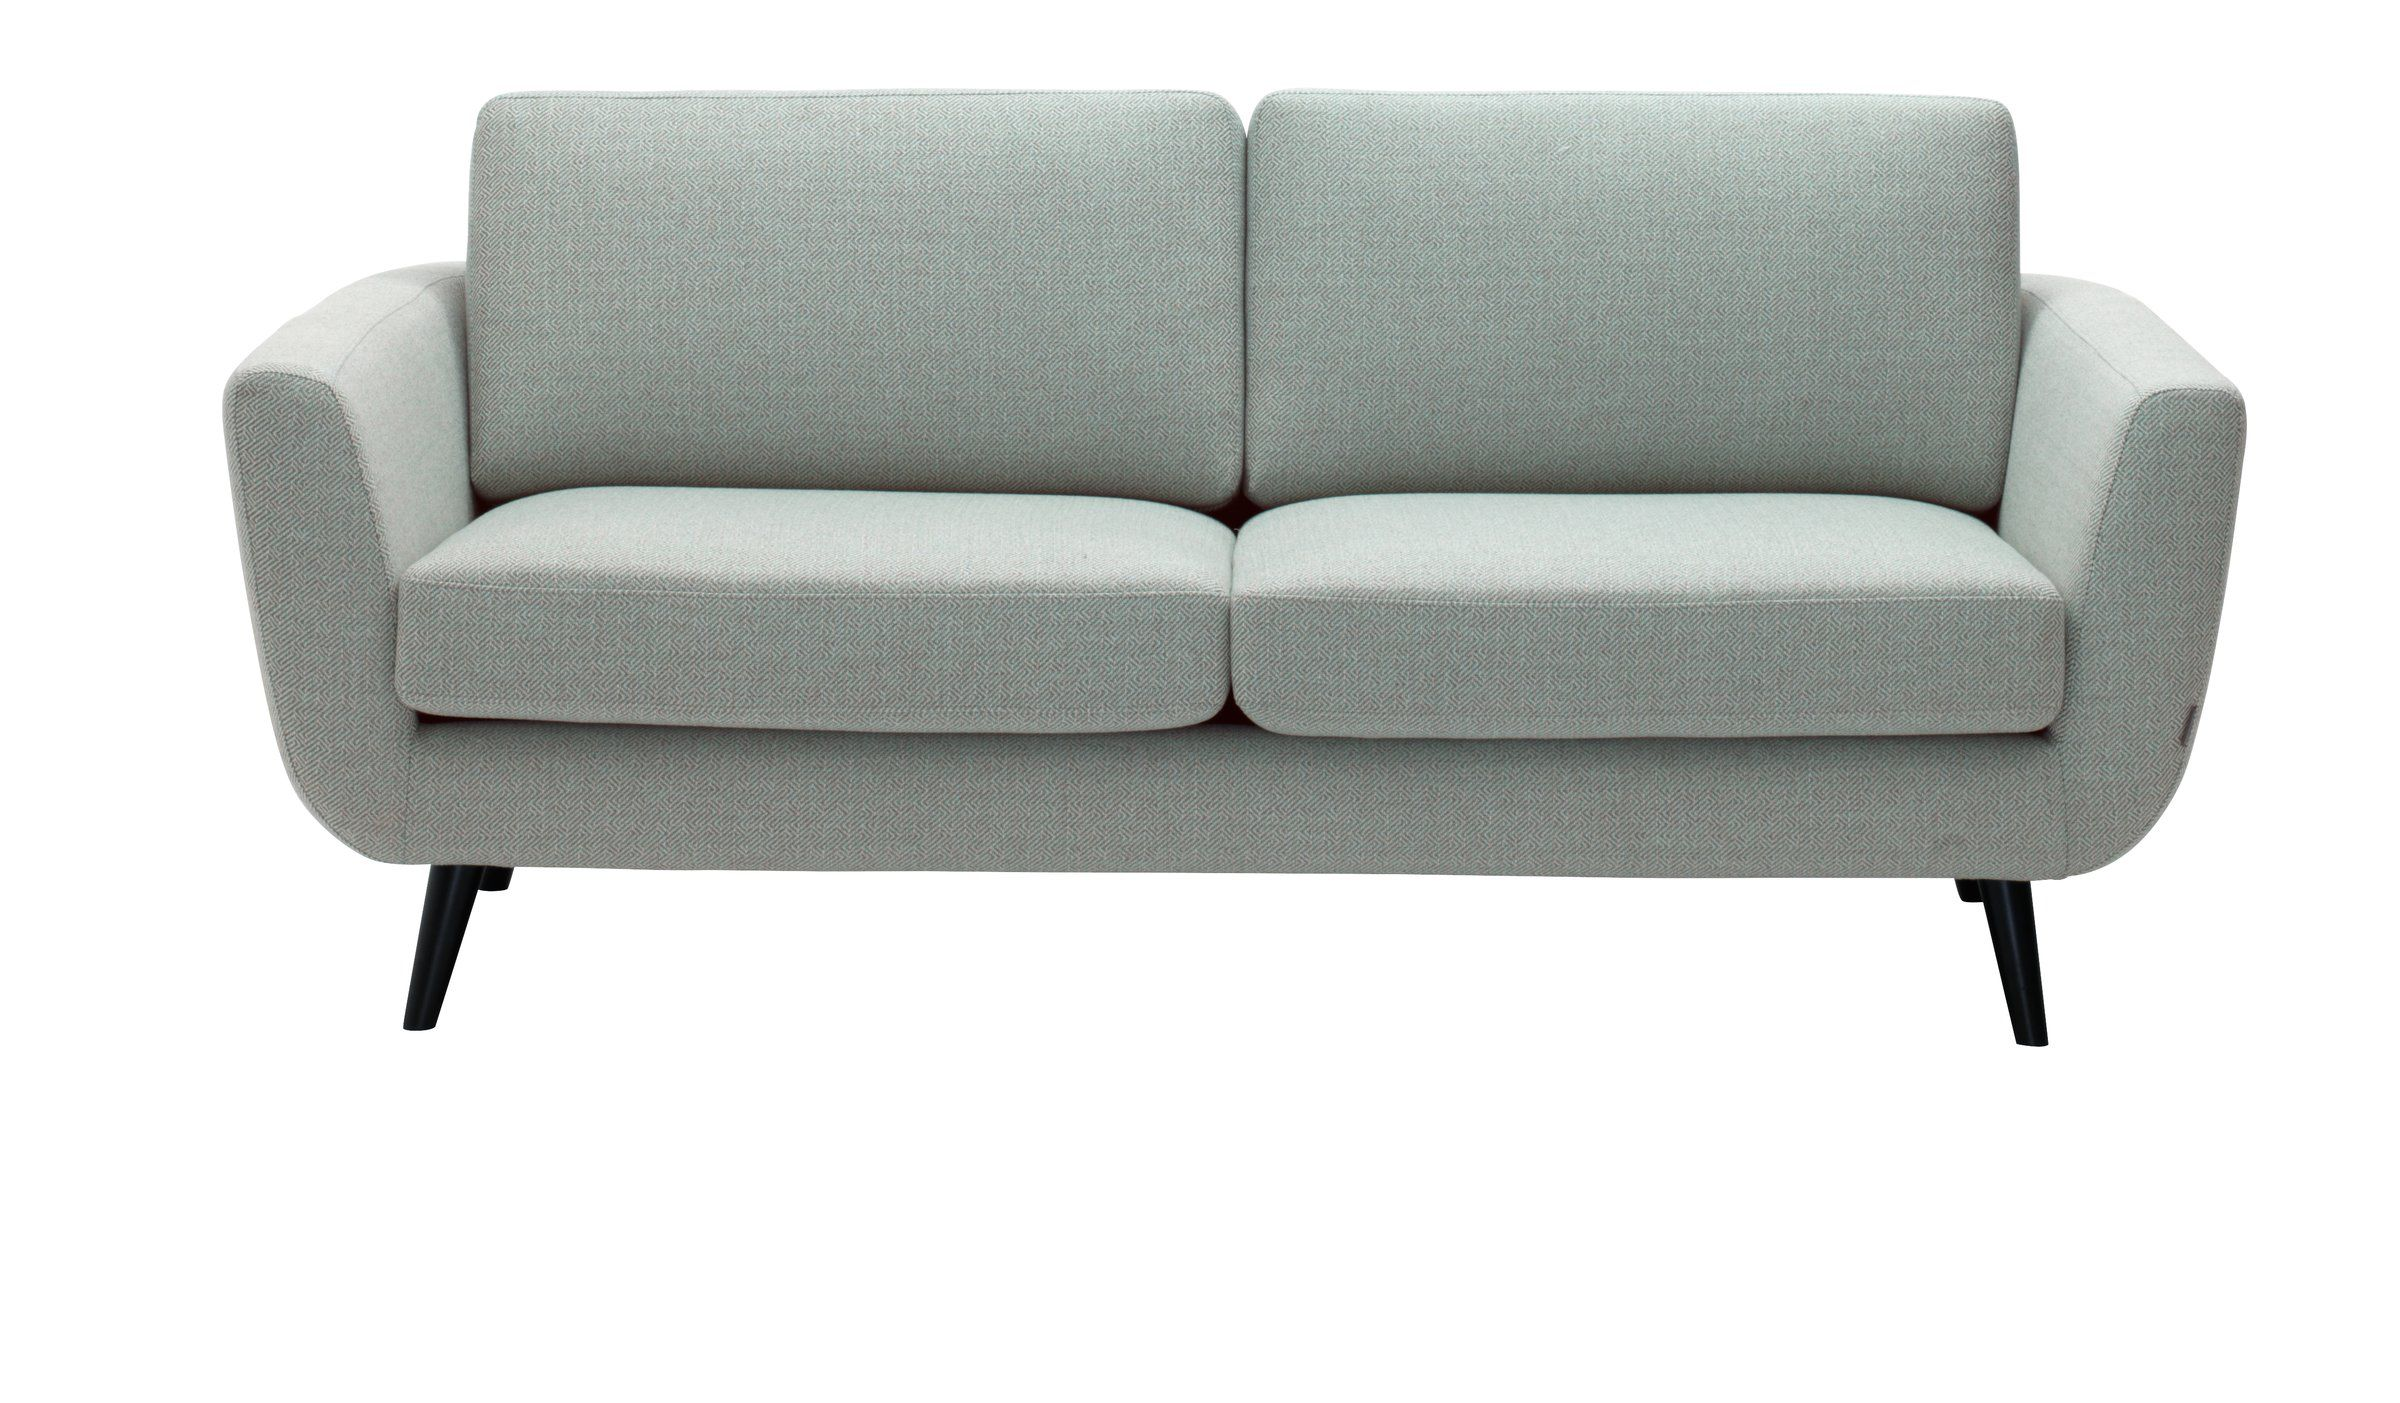 Ecksofa Toronto Sofa Micasa Homedesignview Co